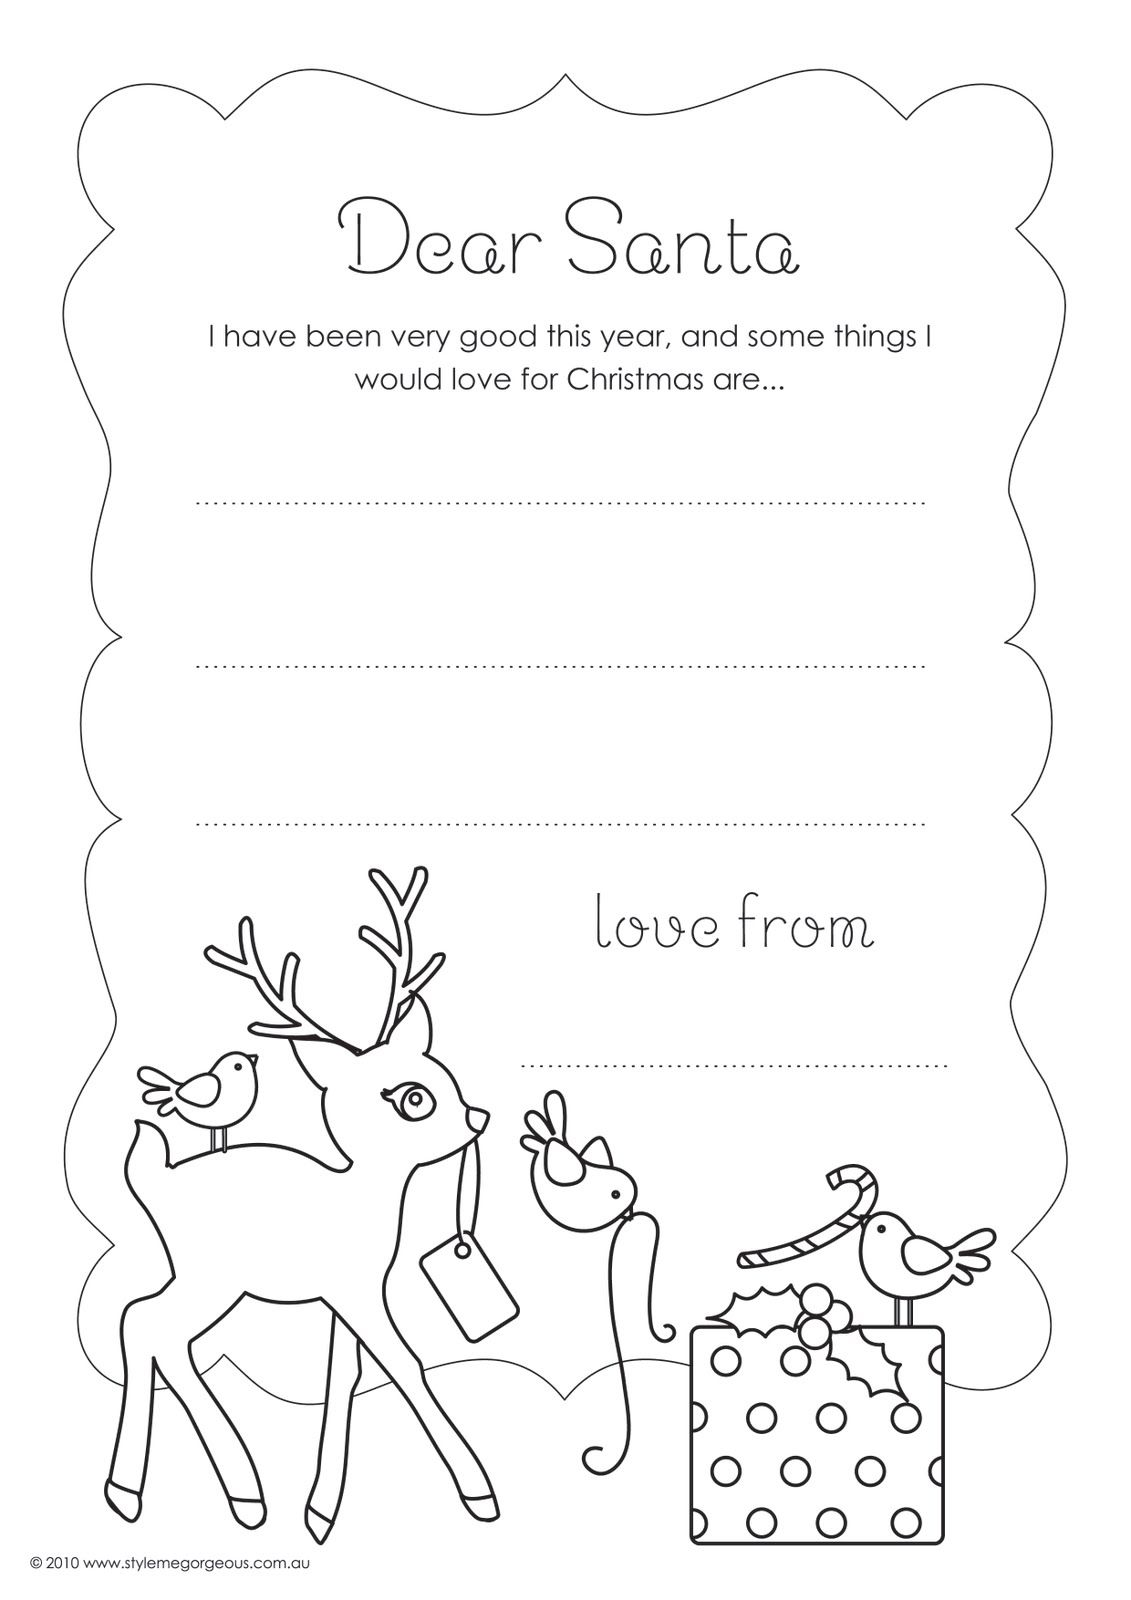 Dear santa letter template for kindergarten style me for Dear santa template kindergarten letter